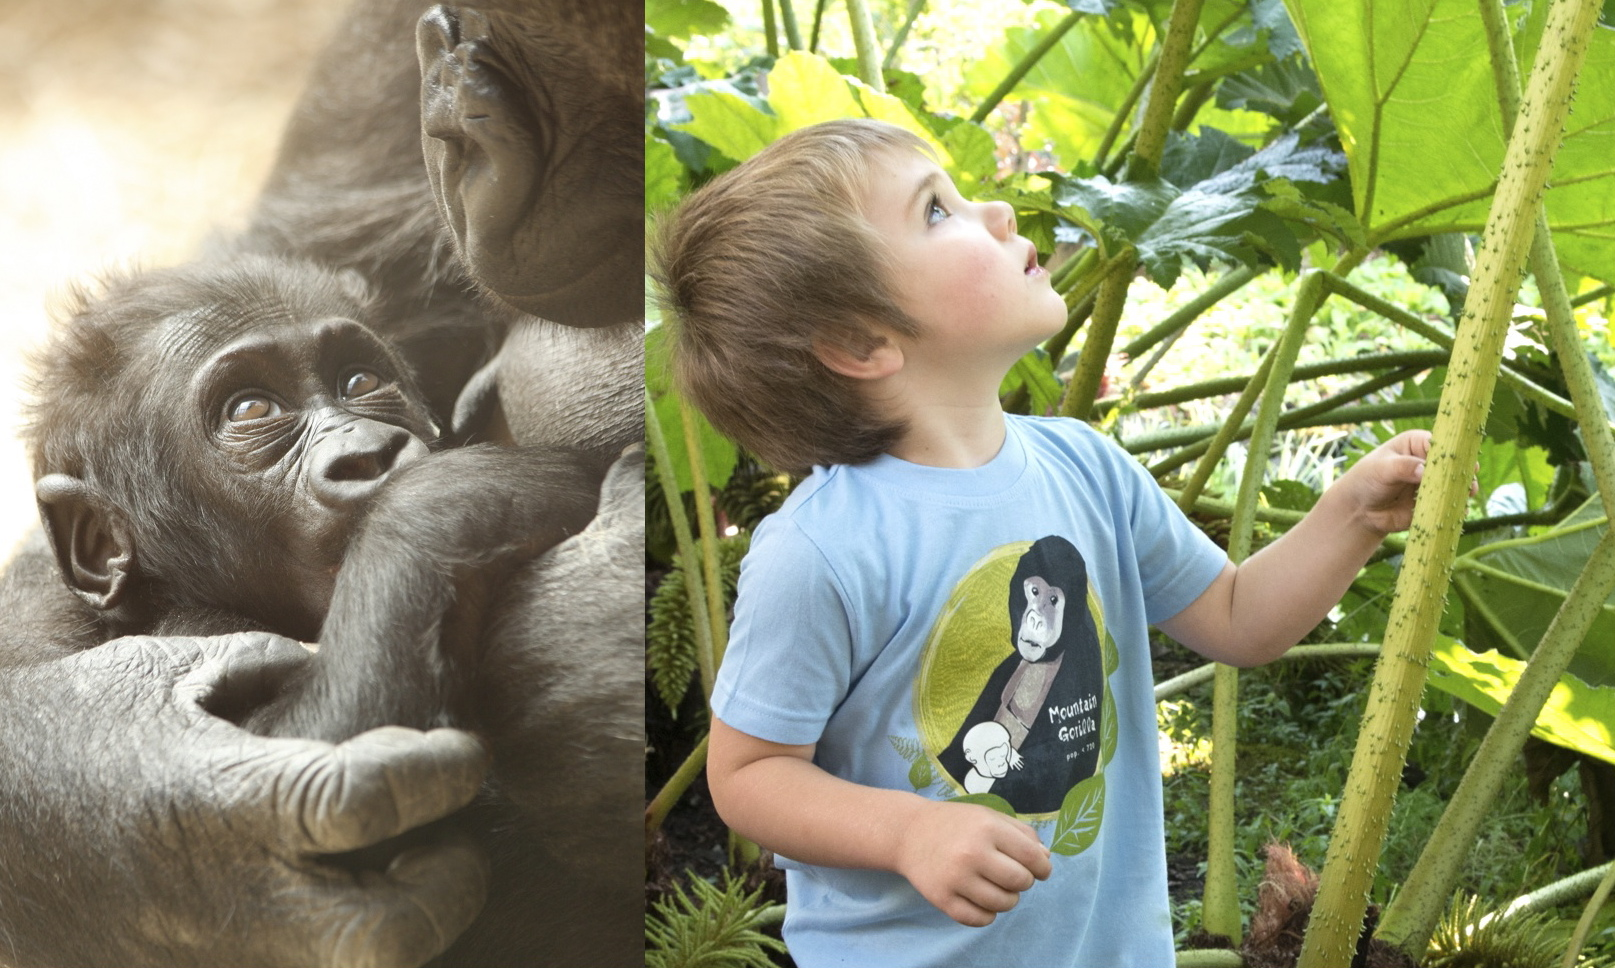 $1 for One.  Support the extraordinary work of the  International Gorilla Conservation Programme in Rwanda  by purchasing a  SpeeZees Mountain Gorilla kids tee in Baby Blue or Happy Sun.  Made from  100% GOTS certified organic cotton .